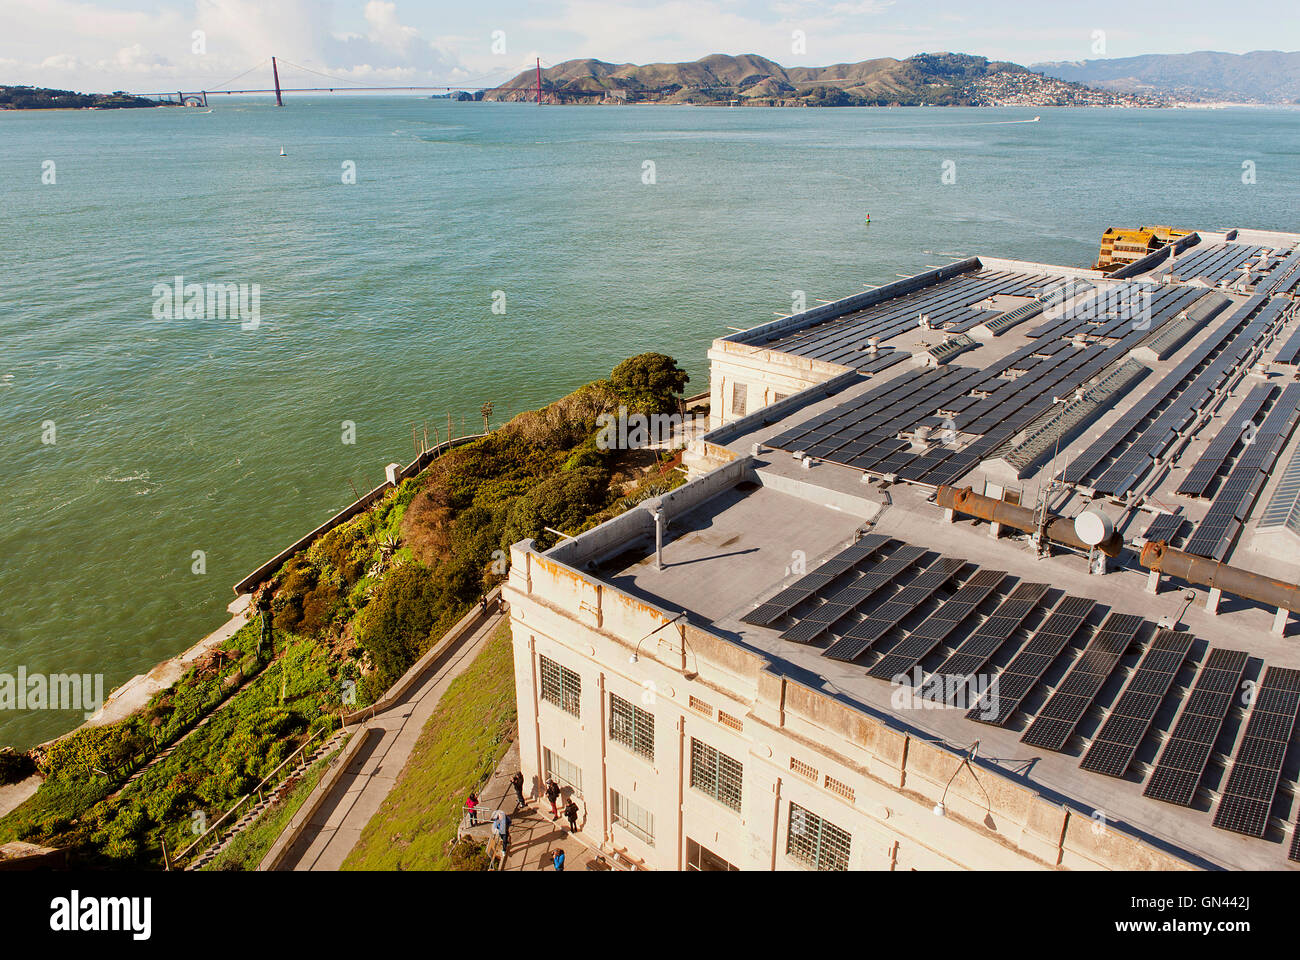 """The longtime home to Al Capone and """"Machine Gun"""" Kelly in San Francisco Bay now houses 1,300 photovoltaic panels - Stock Image"""